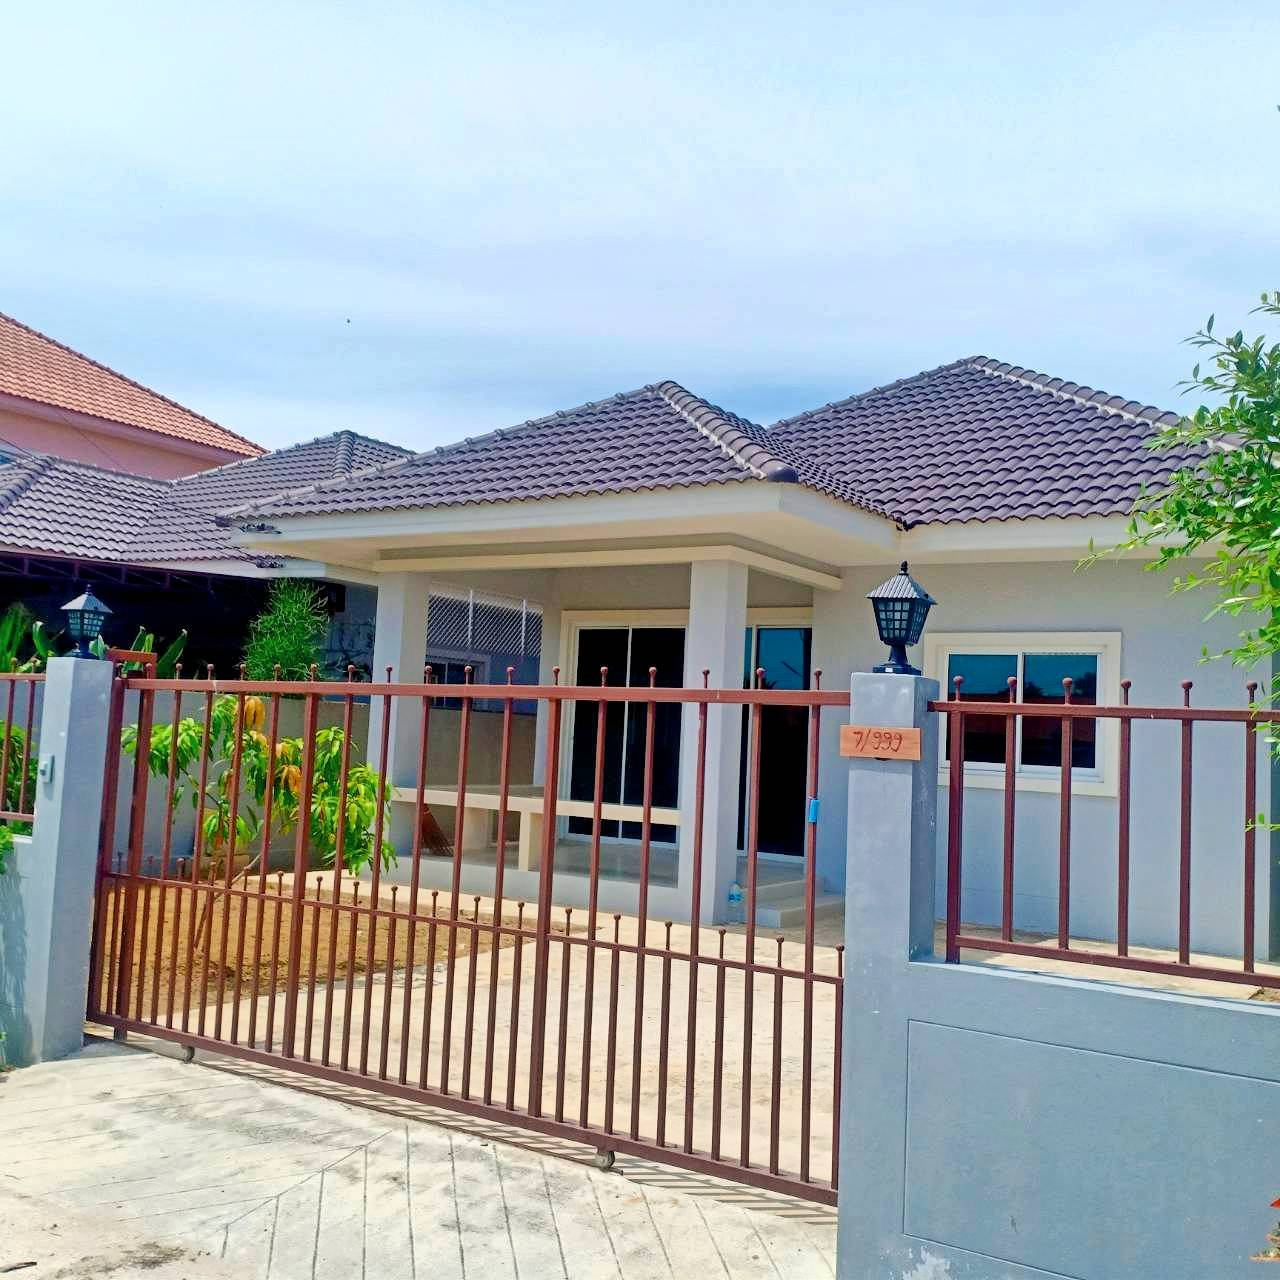 For SaleHouseCha am, Hua Hin : Cheap sale house for sale 50 square meters 1.69 million baht ️ ️ near Thanarat camp just 2 km‼ ️ the price is higher than the appraised value